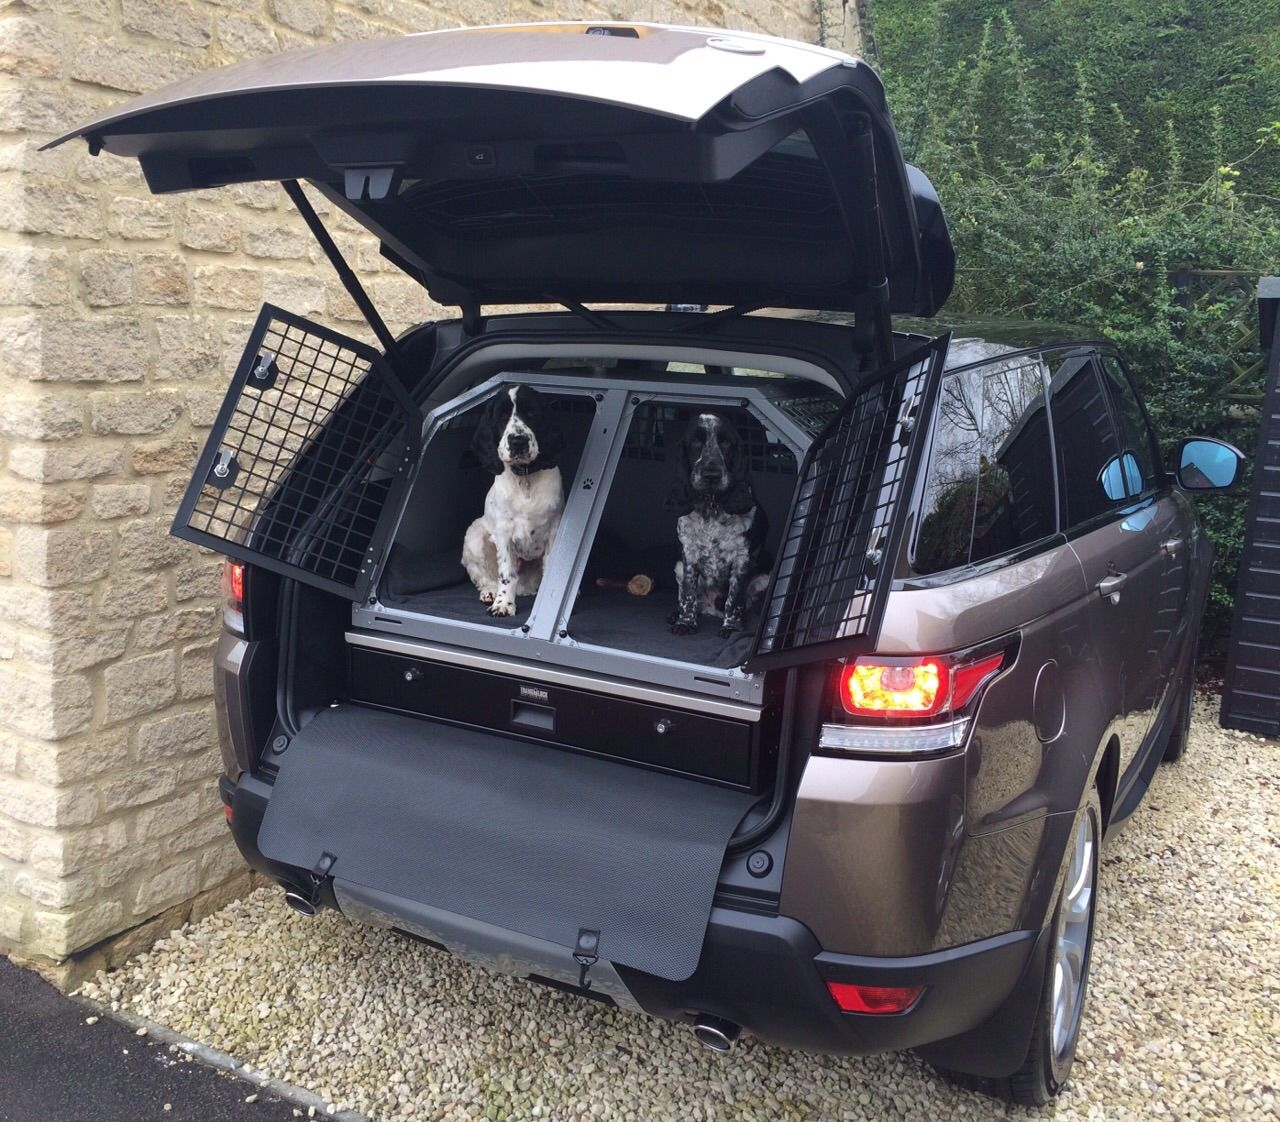 Fabulous Solution For Carrying Your Dogs And Valuables In Range Rover Sport Transk9 B27 Dog Box And Tl2 Storage Un Dog Kennel Dog Box For Truck Dog Equipment